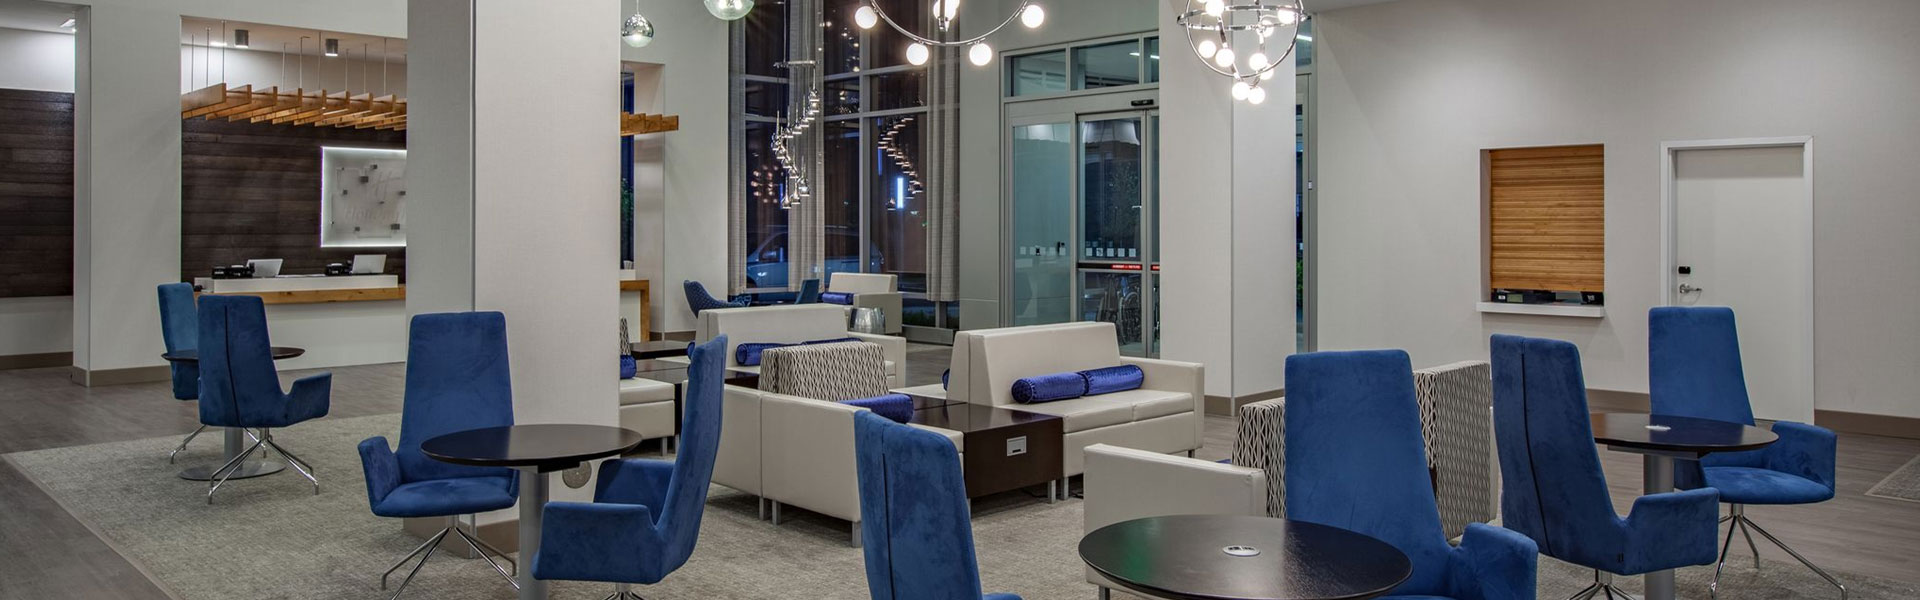 Holiday Inn Cleveland Clinic Ohio - Email Offers